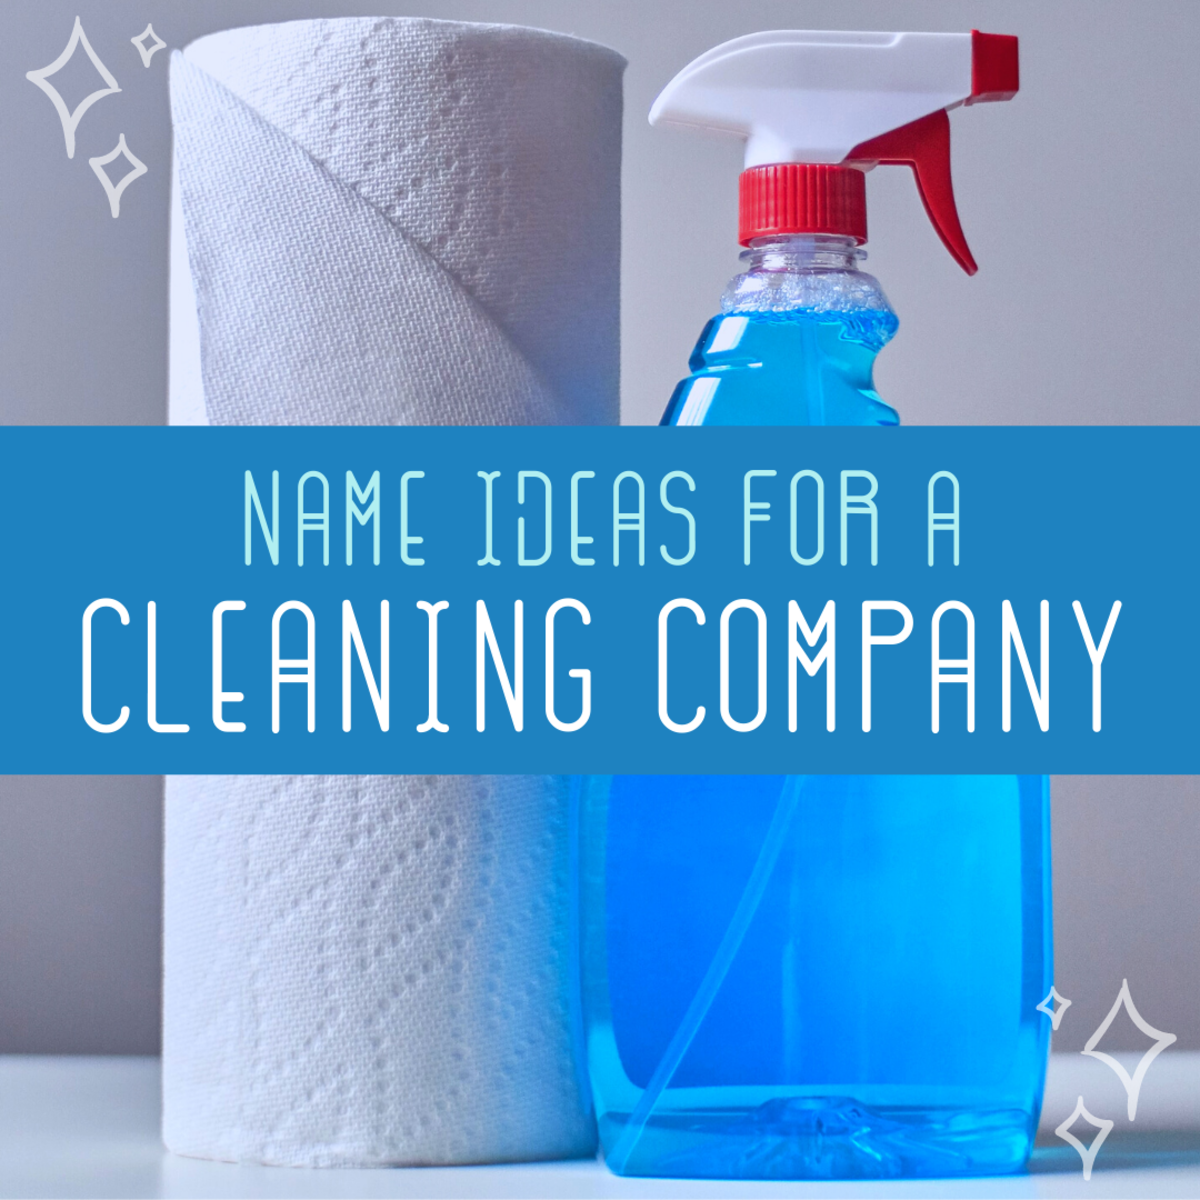 Check out this list of catchy, squeaky-clean names for your new cleaning service.